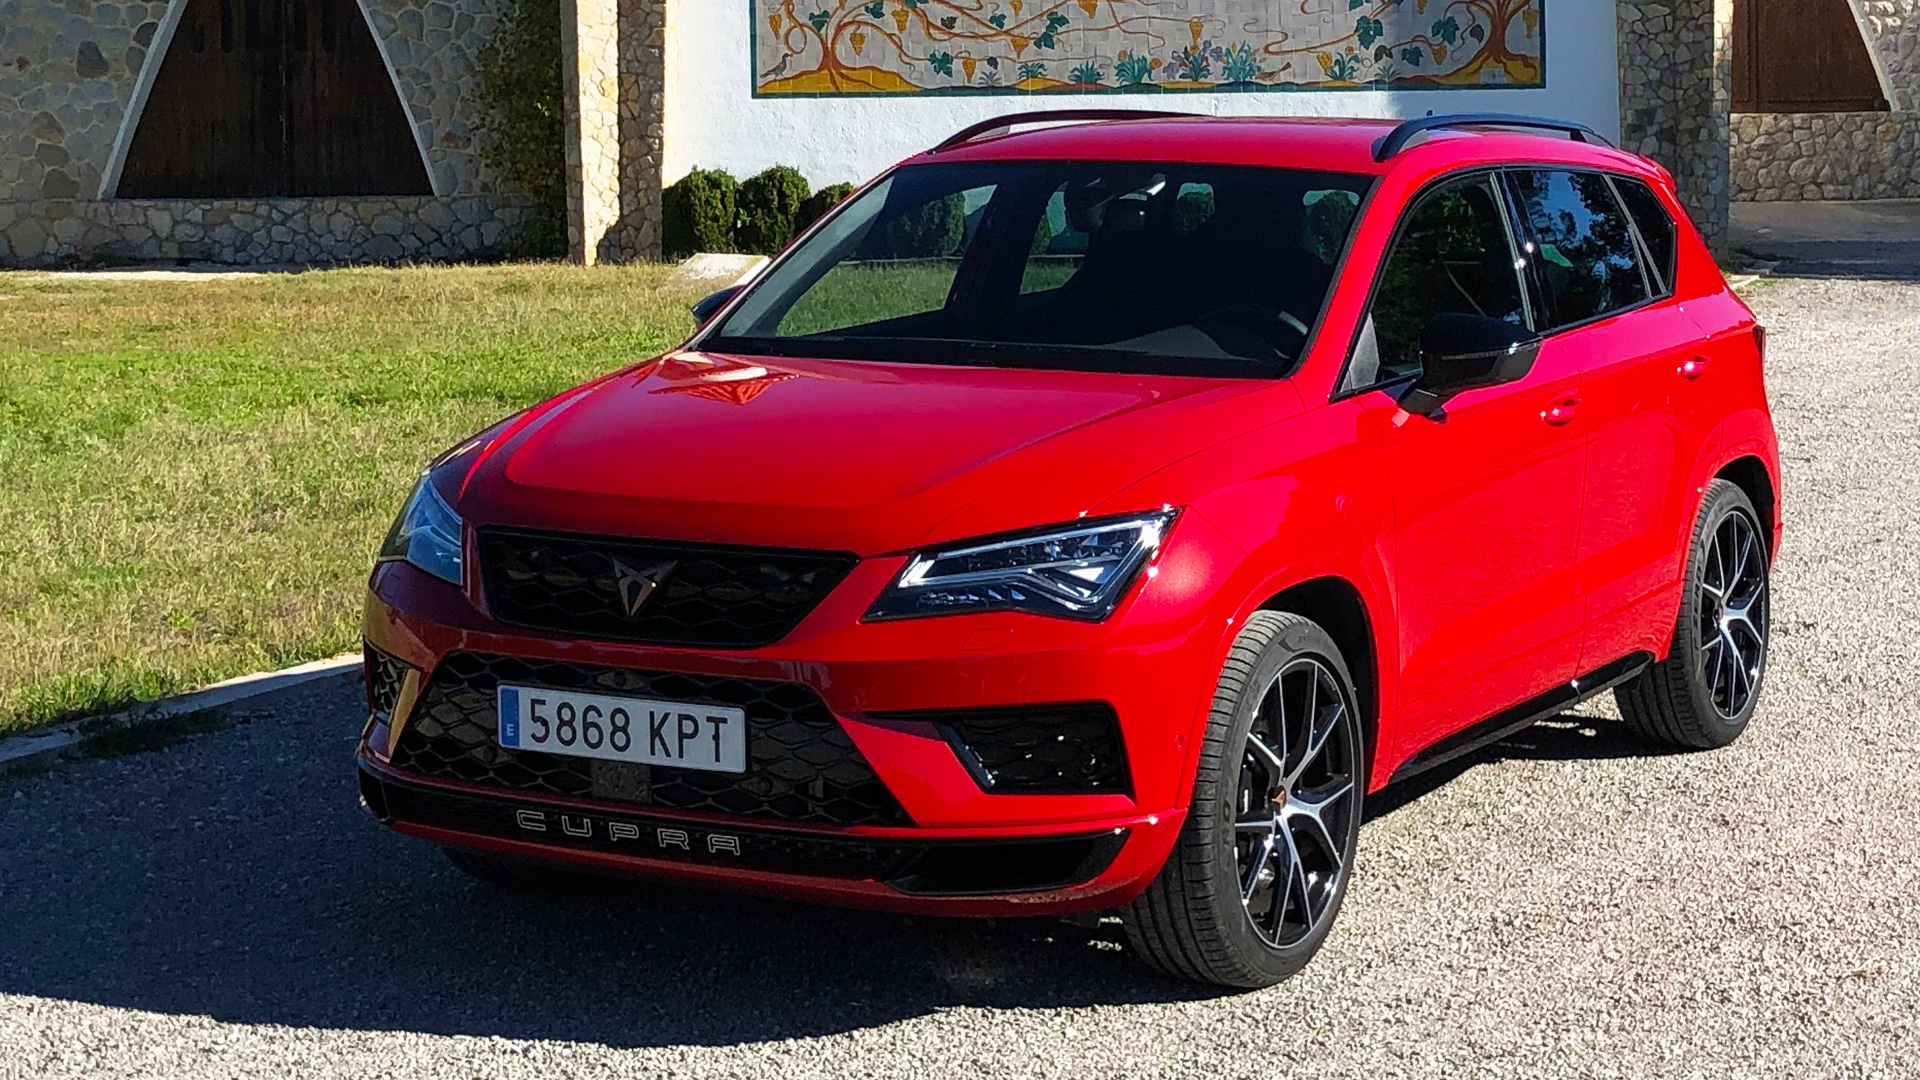 cupra ateca 2 0 tsi das 300 ps sport suv im test die autovideo autotest. Black Bedroom Furniture Sets. Home Design Ideas